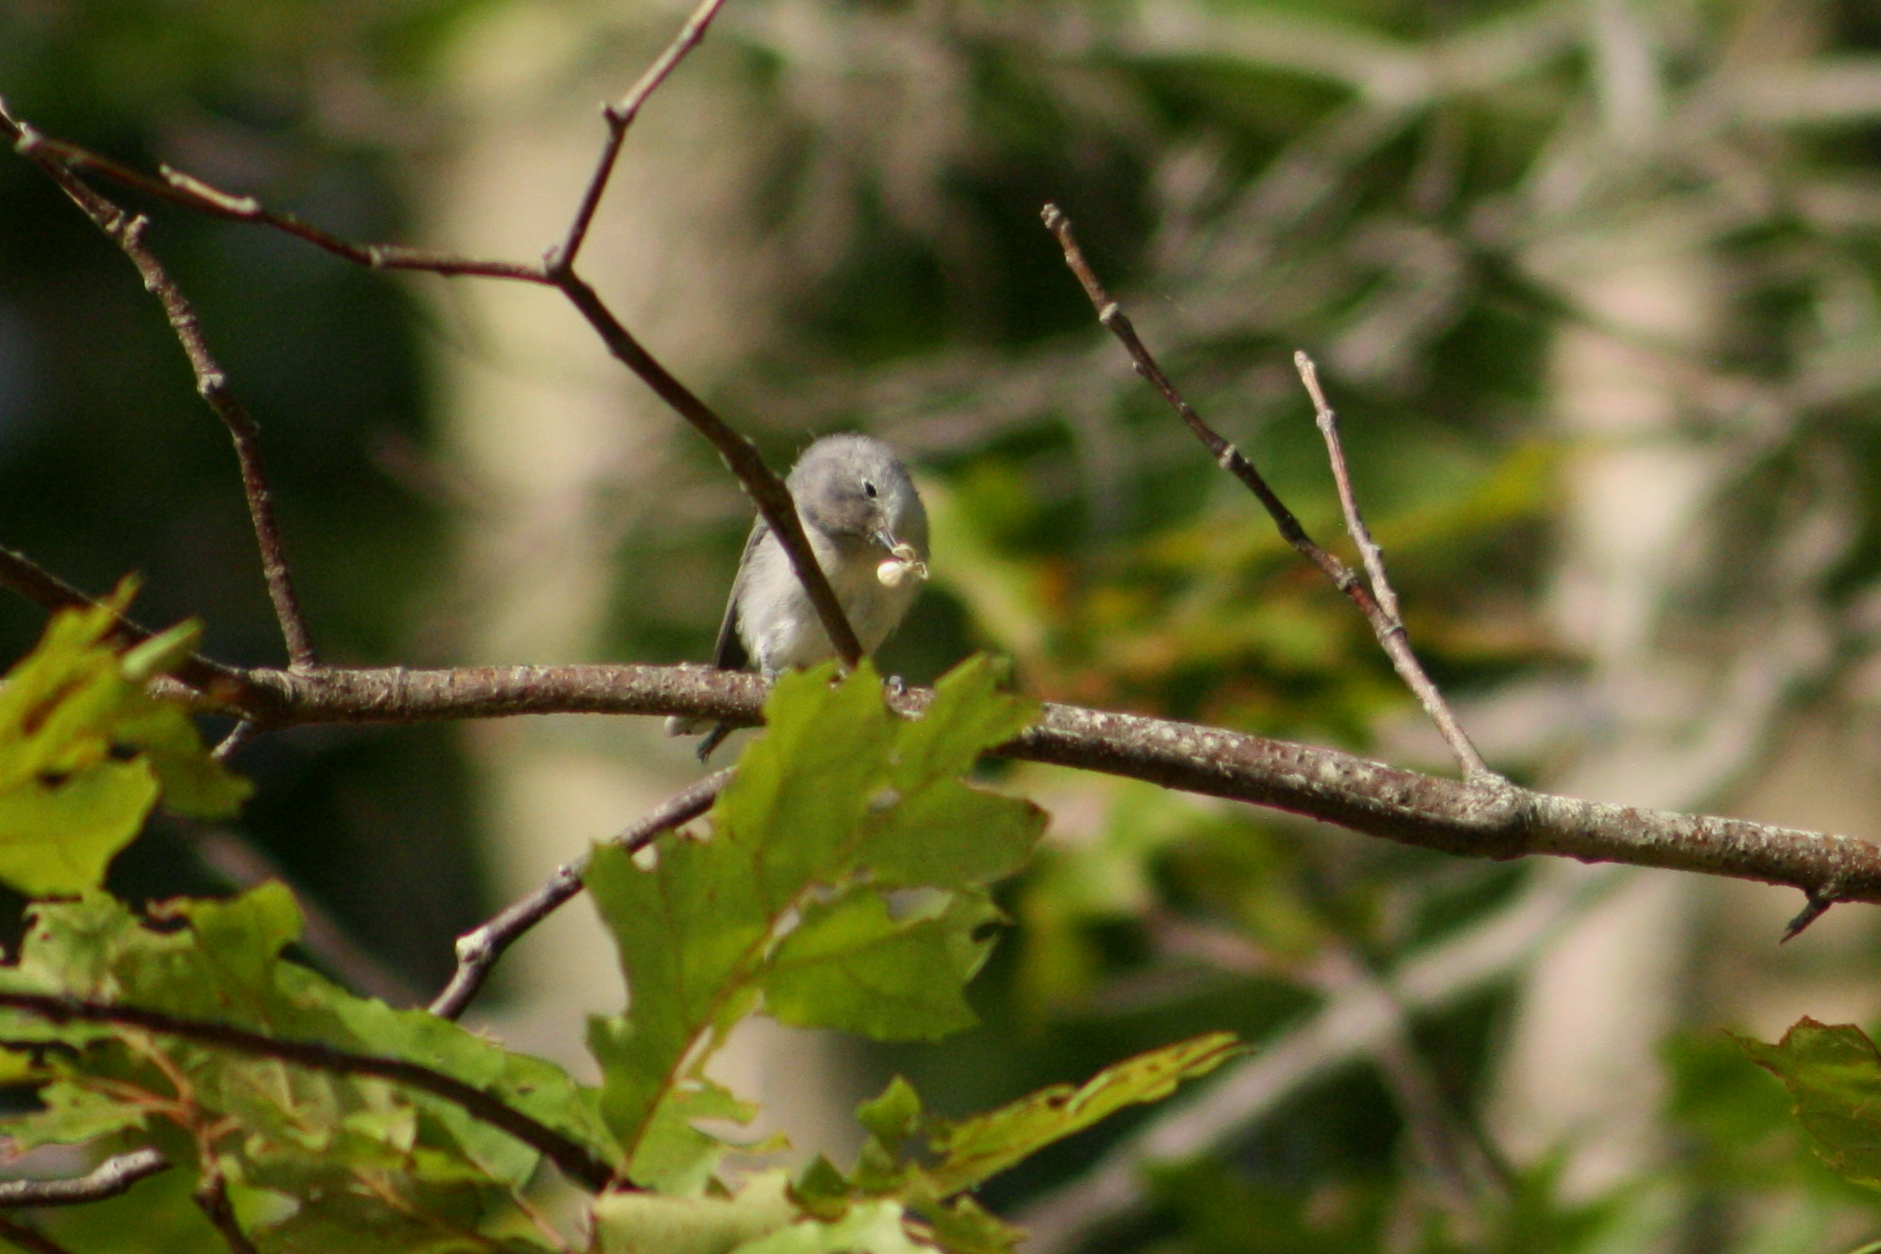 Blue-gray gnatcatcher with a spider